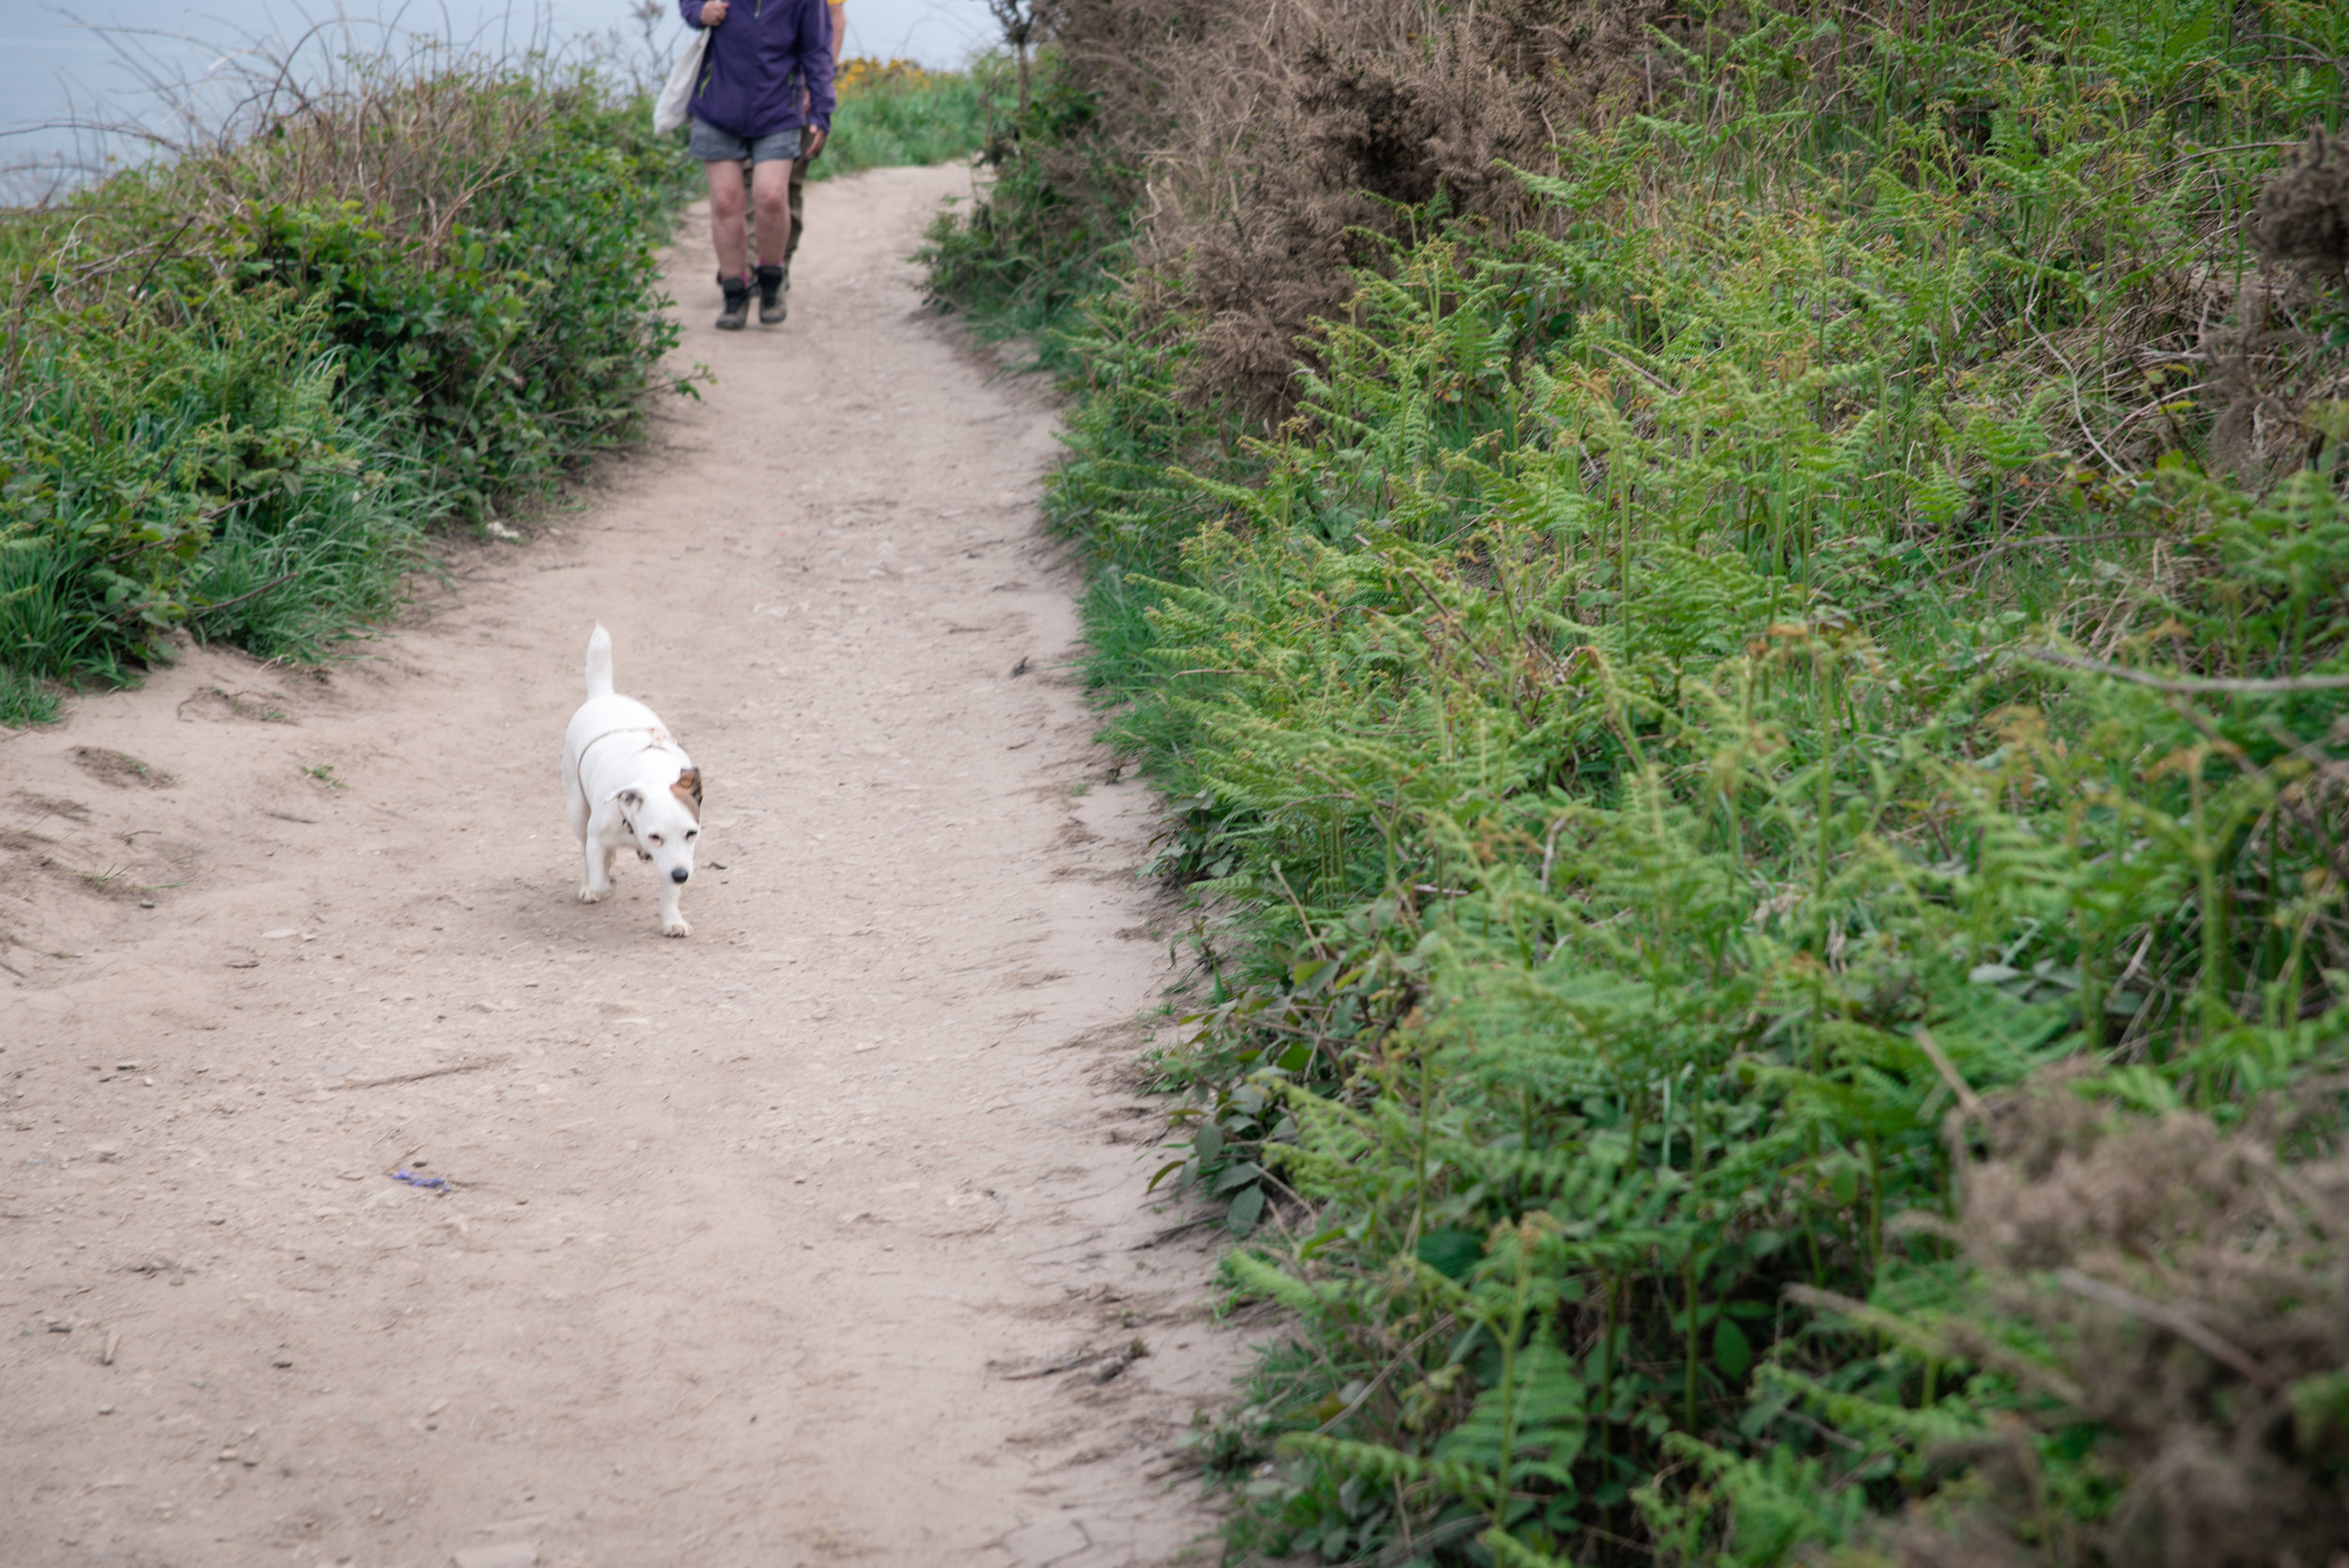 Dogs often went without leashes.